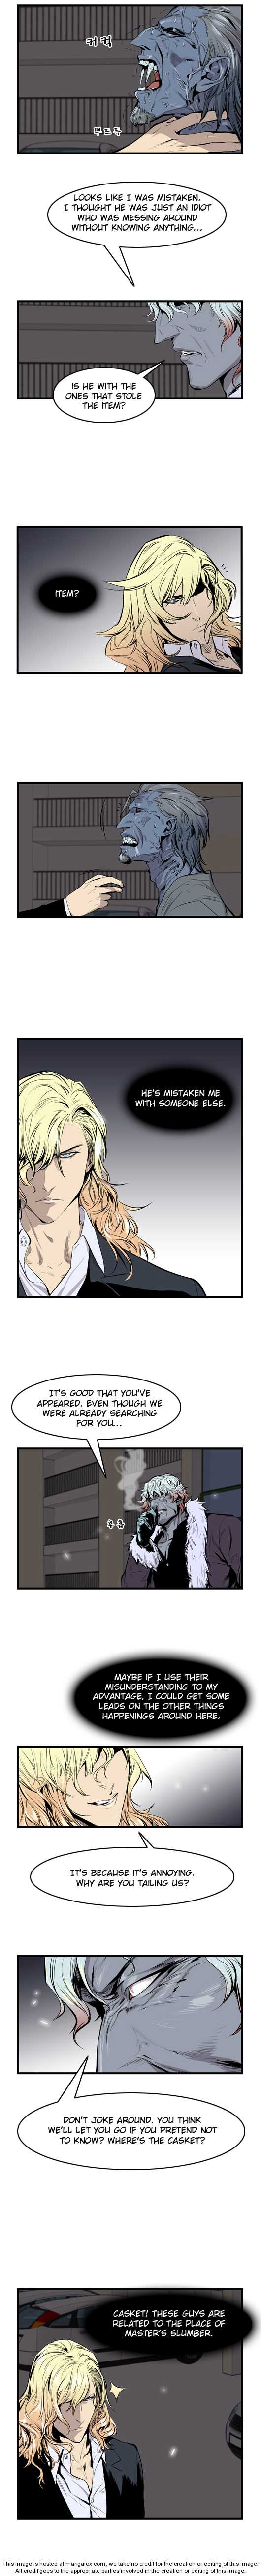 Noblesse 44 Page 3